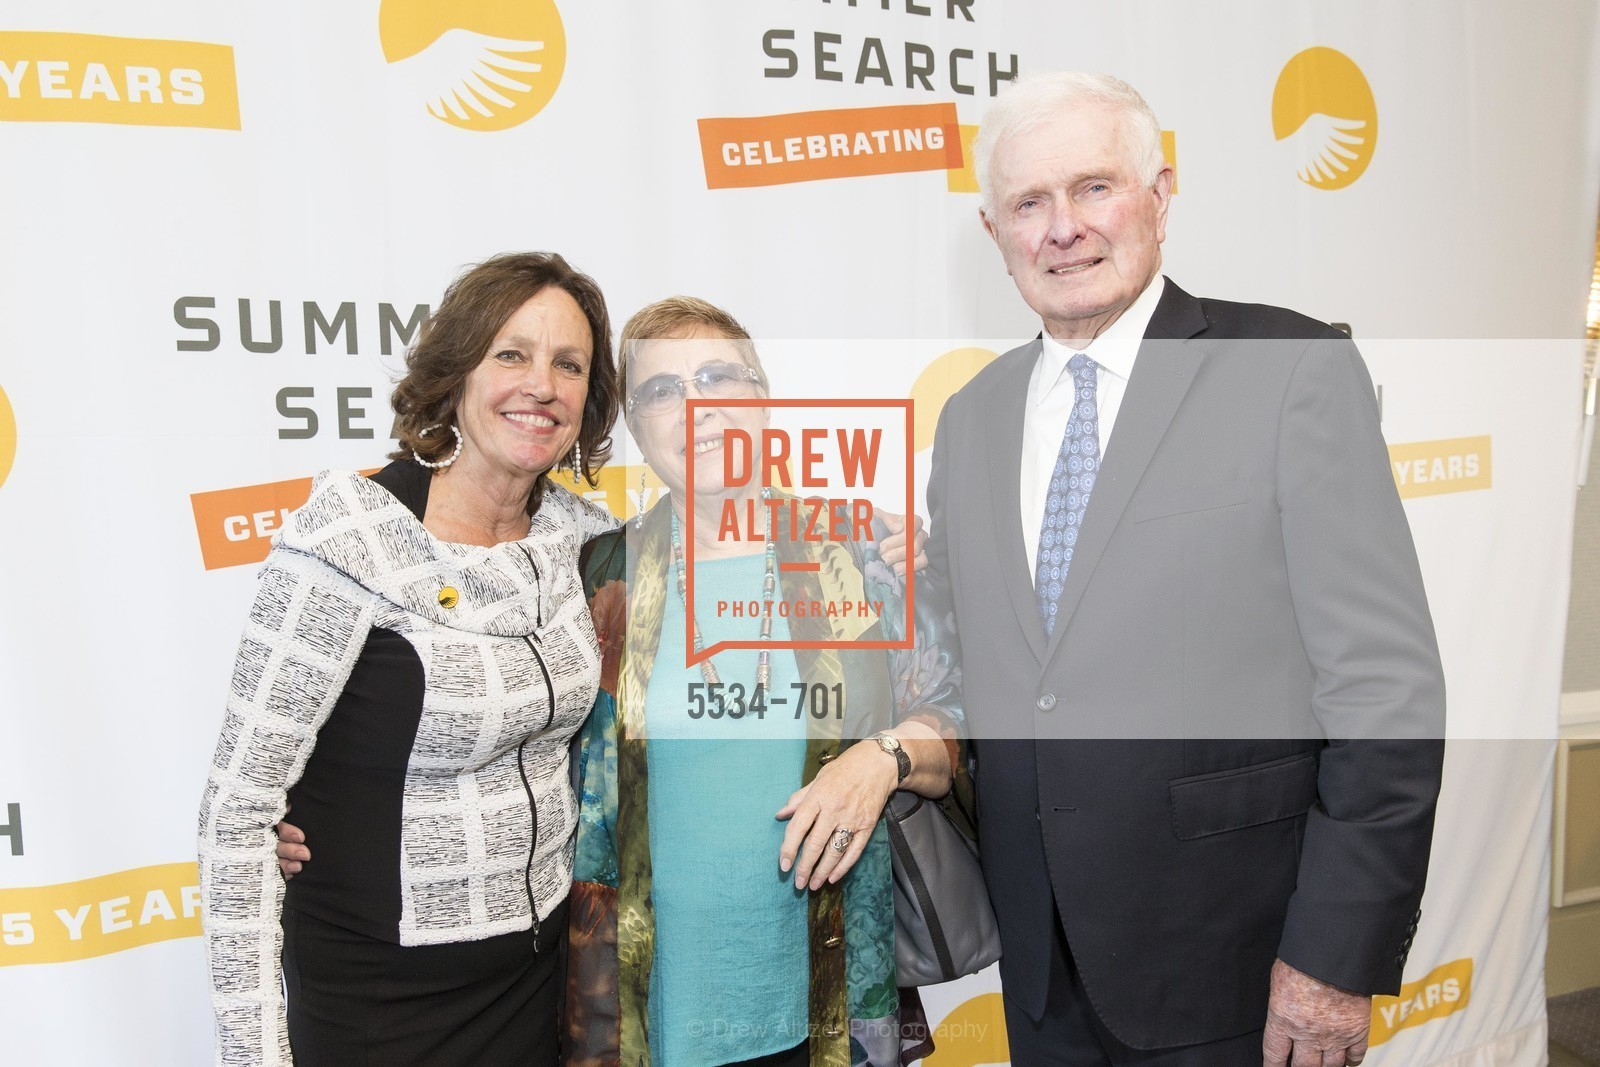 Linda Mornell, Lettie Lupis, John Moriarty, SUMMER SEARCH San Francisco 25th Anniversary, US, May 7th, 2015,Drew Altizer, Drew Altizer Photography, full-service event agency, private events, San Francisco photographer, photographer California